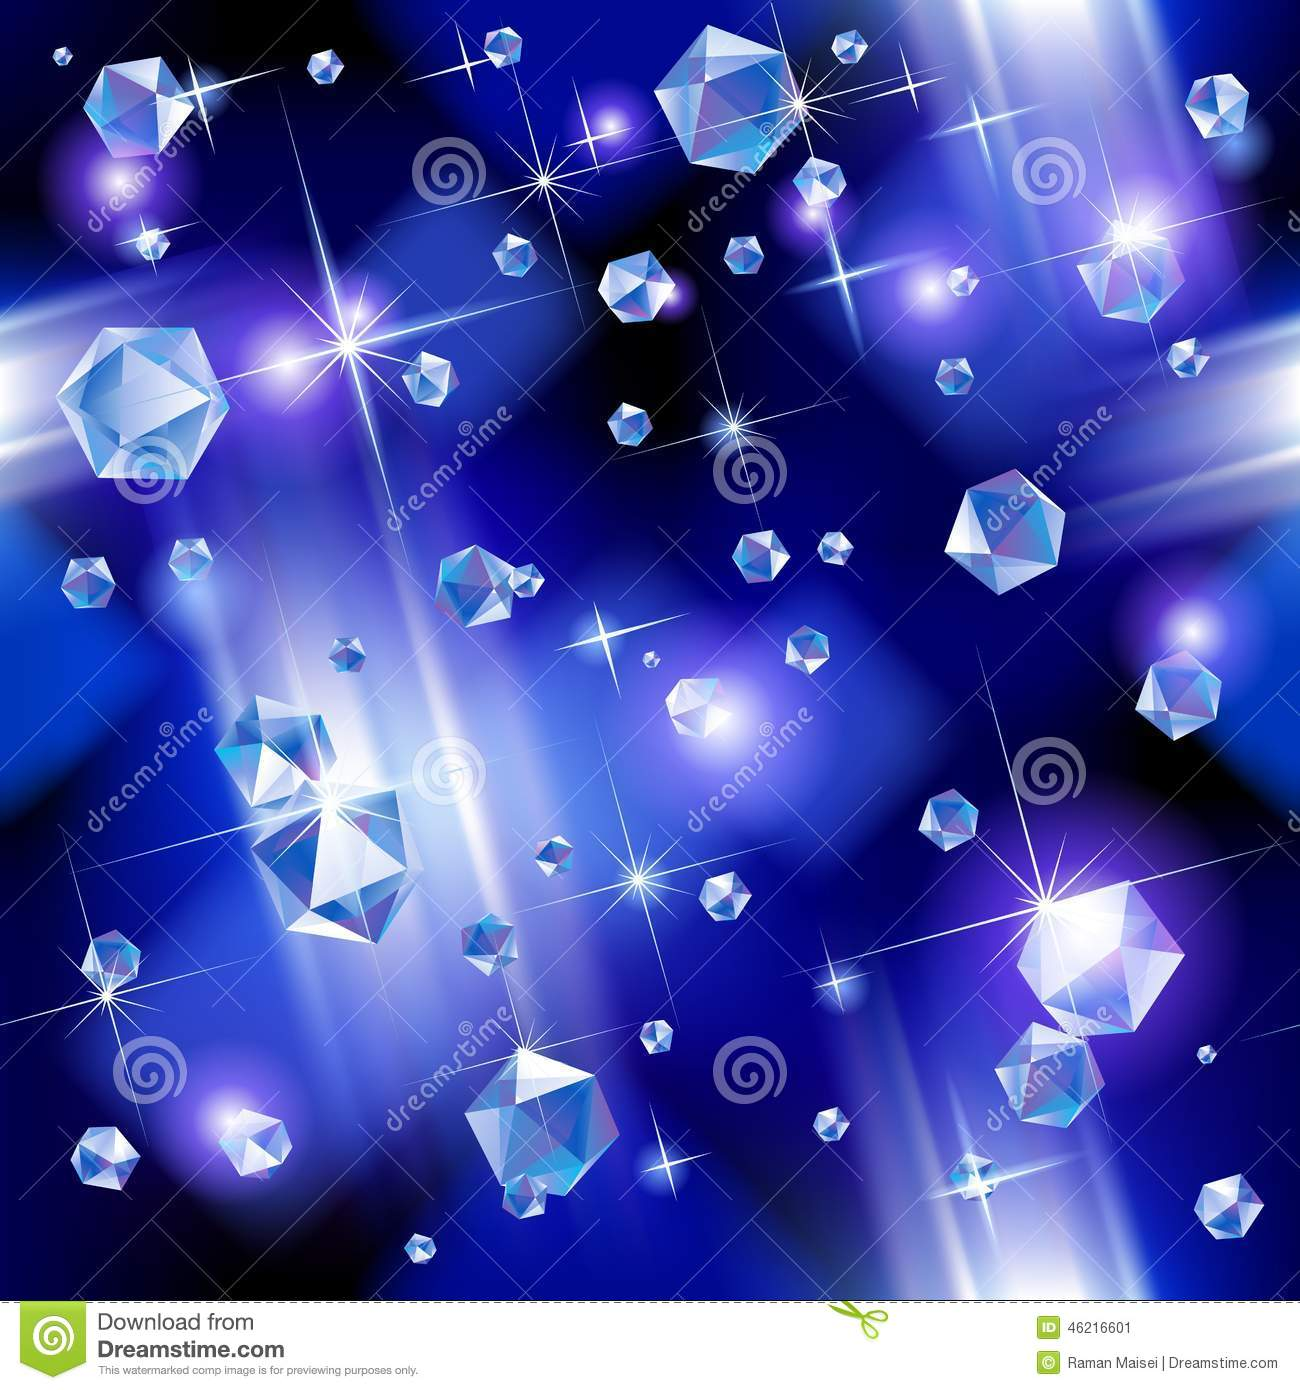 Fall Themed Wallpaper Desktop Diamond Background Stock Image Image Of Shine Blue